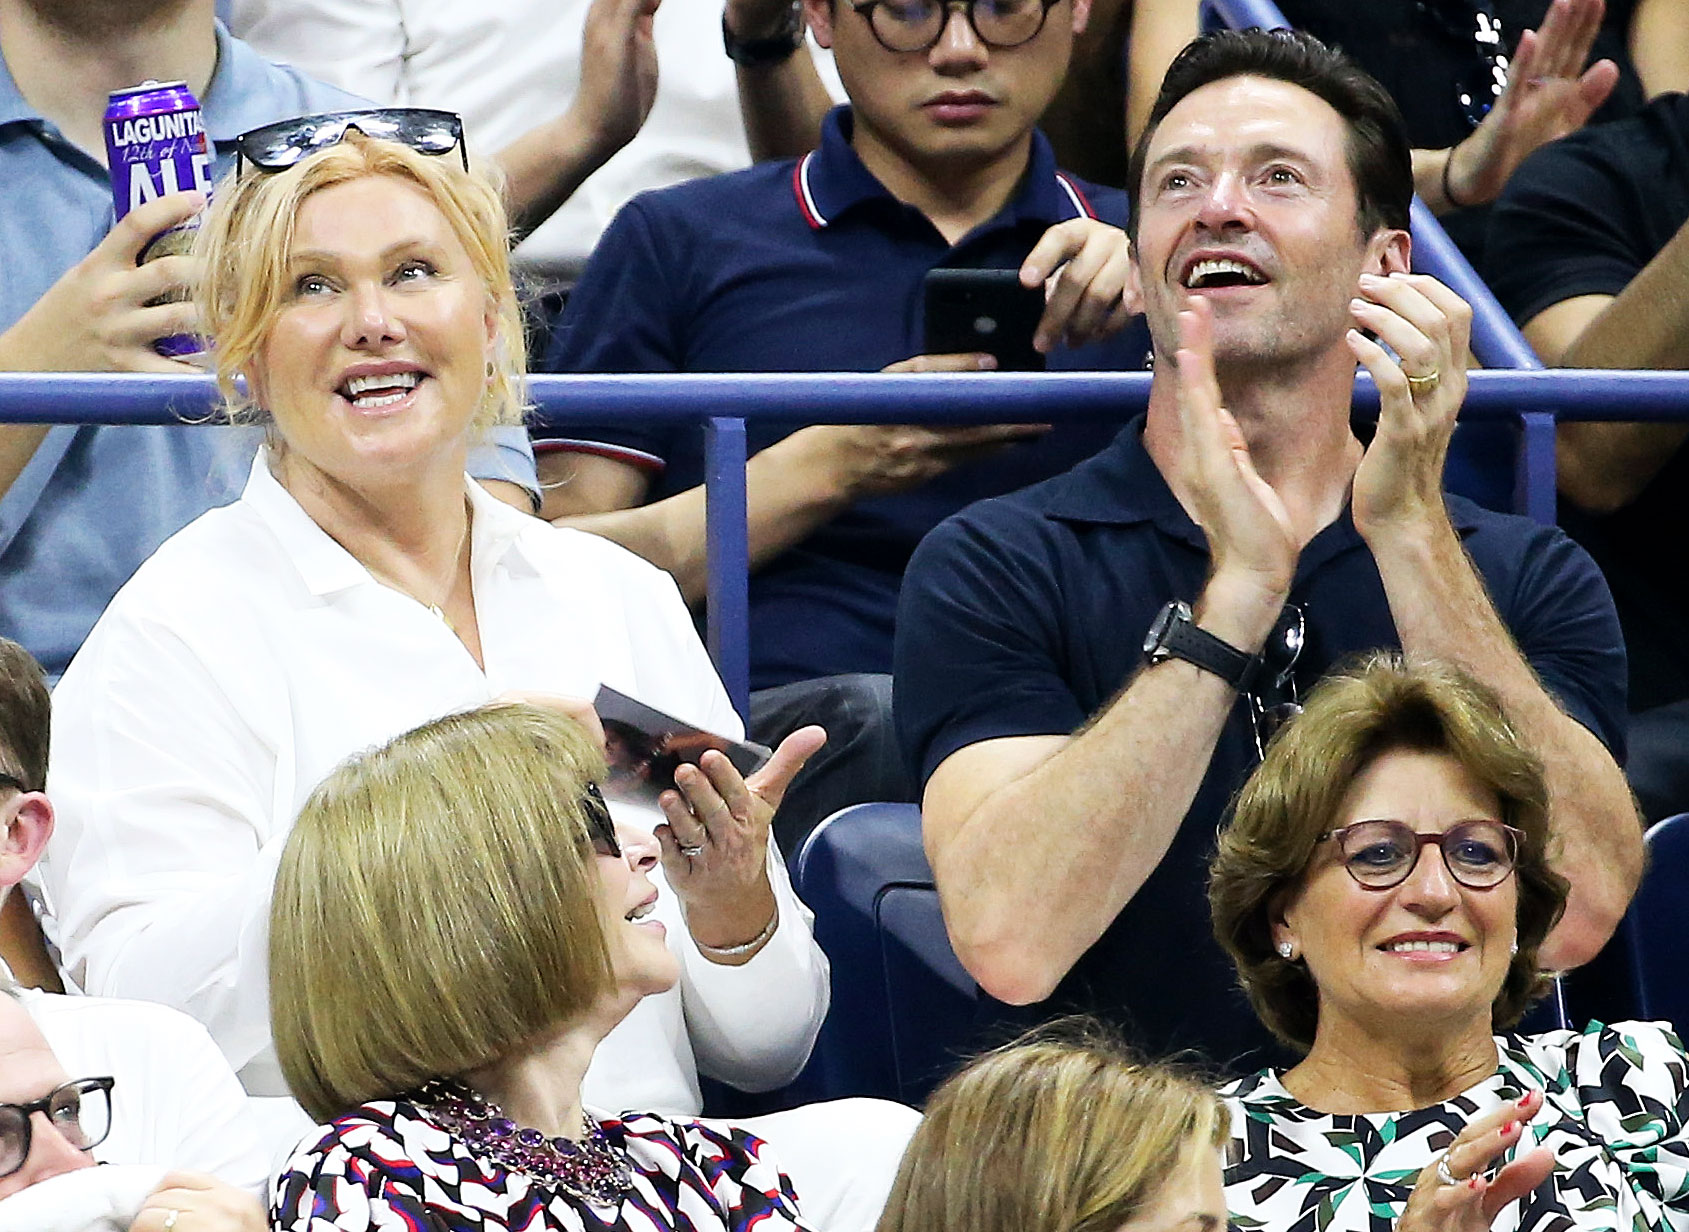 Hugh Jackman Deborra-lee Furness Us Open 2018 - The happily married pair clapped as they took in a game on August 28.